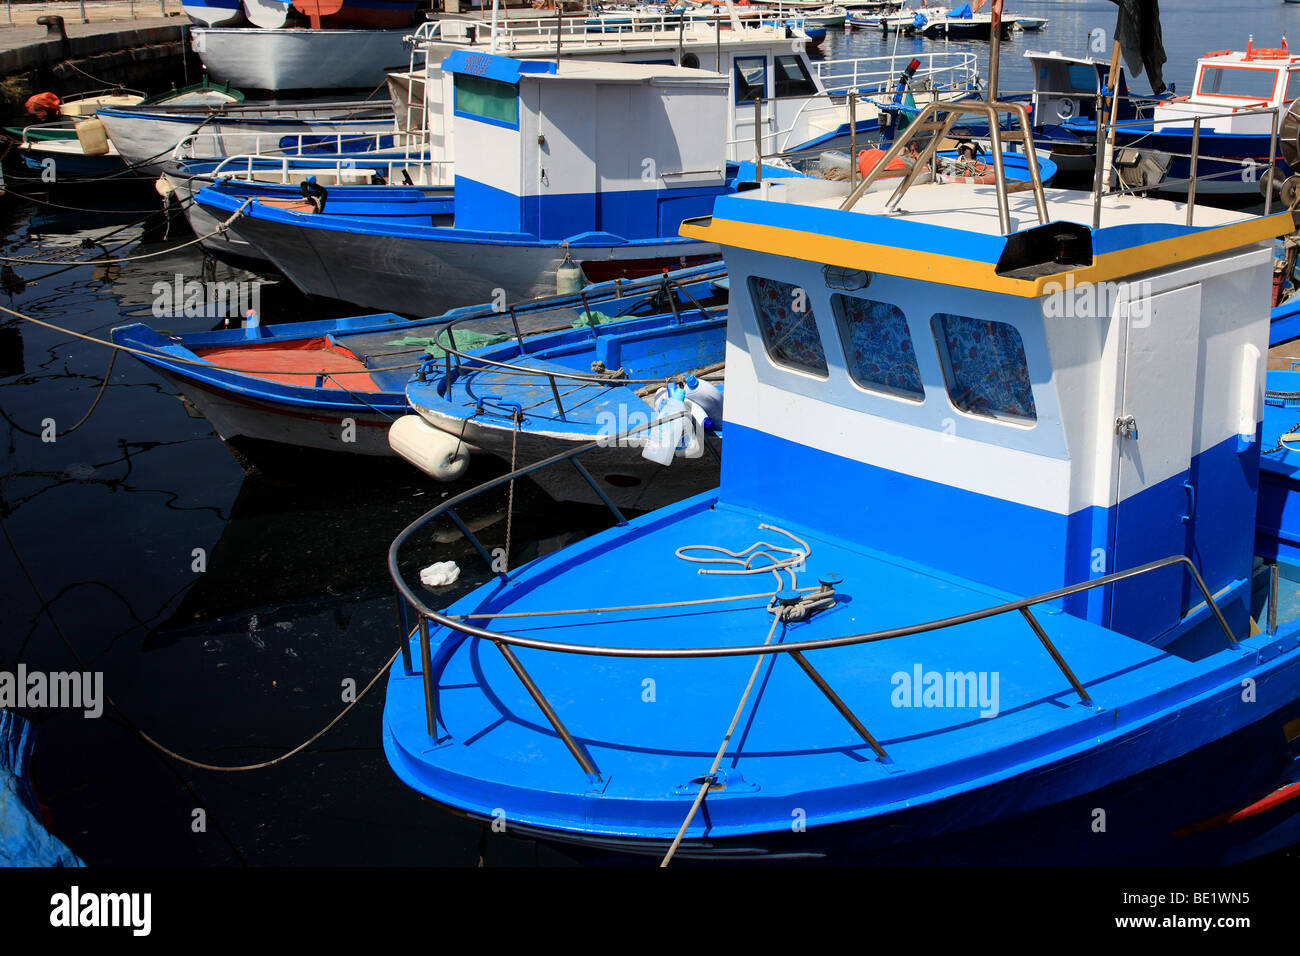 Fishing boats moored in Palermo Sicily Italy - Stock Image